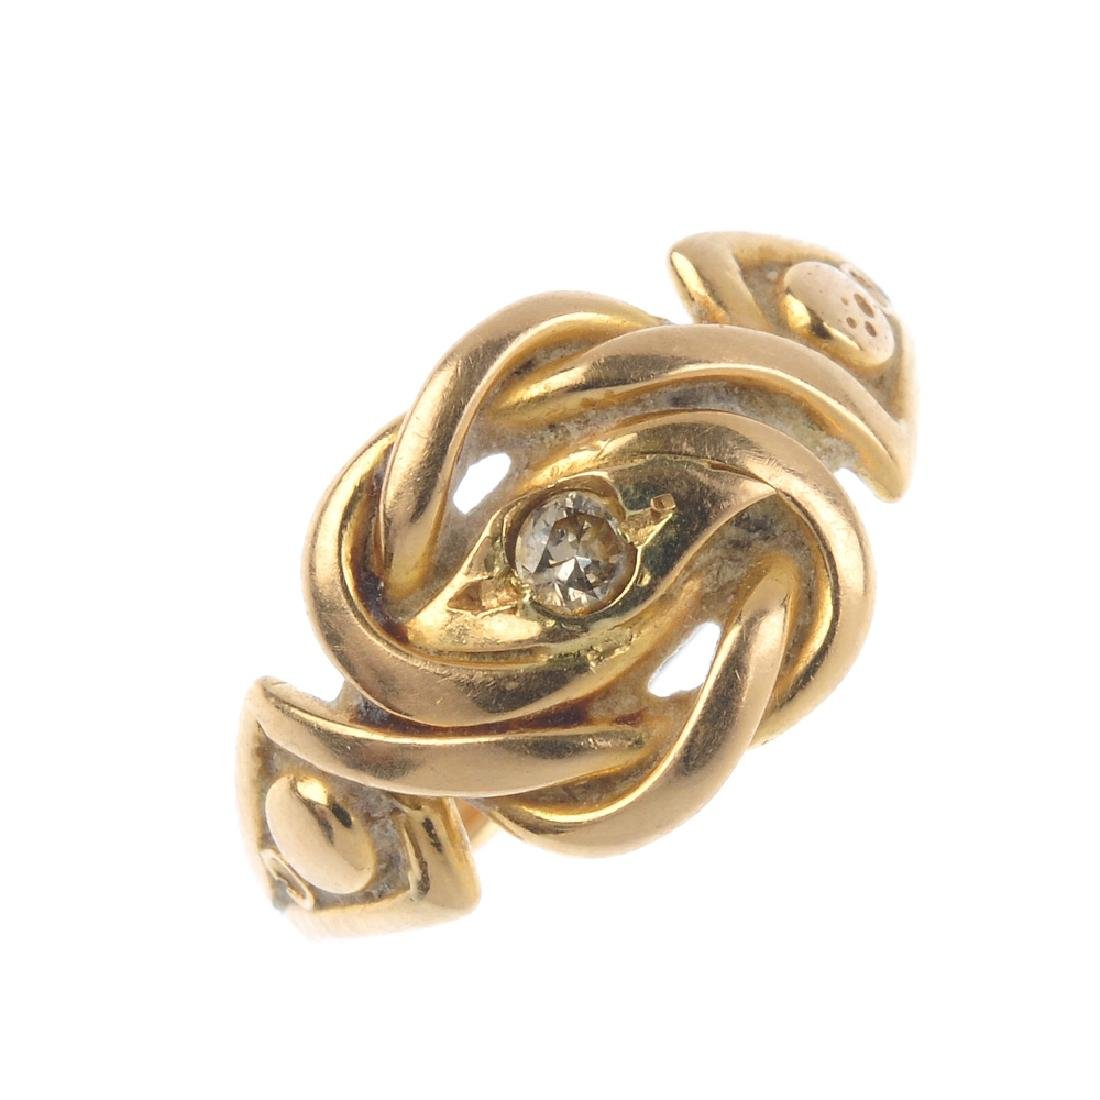 An early 20th century gold diamond dress ring. The